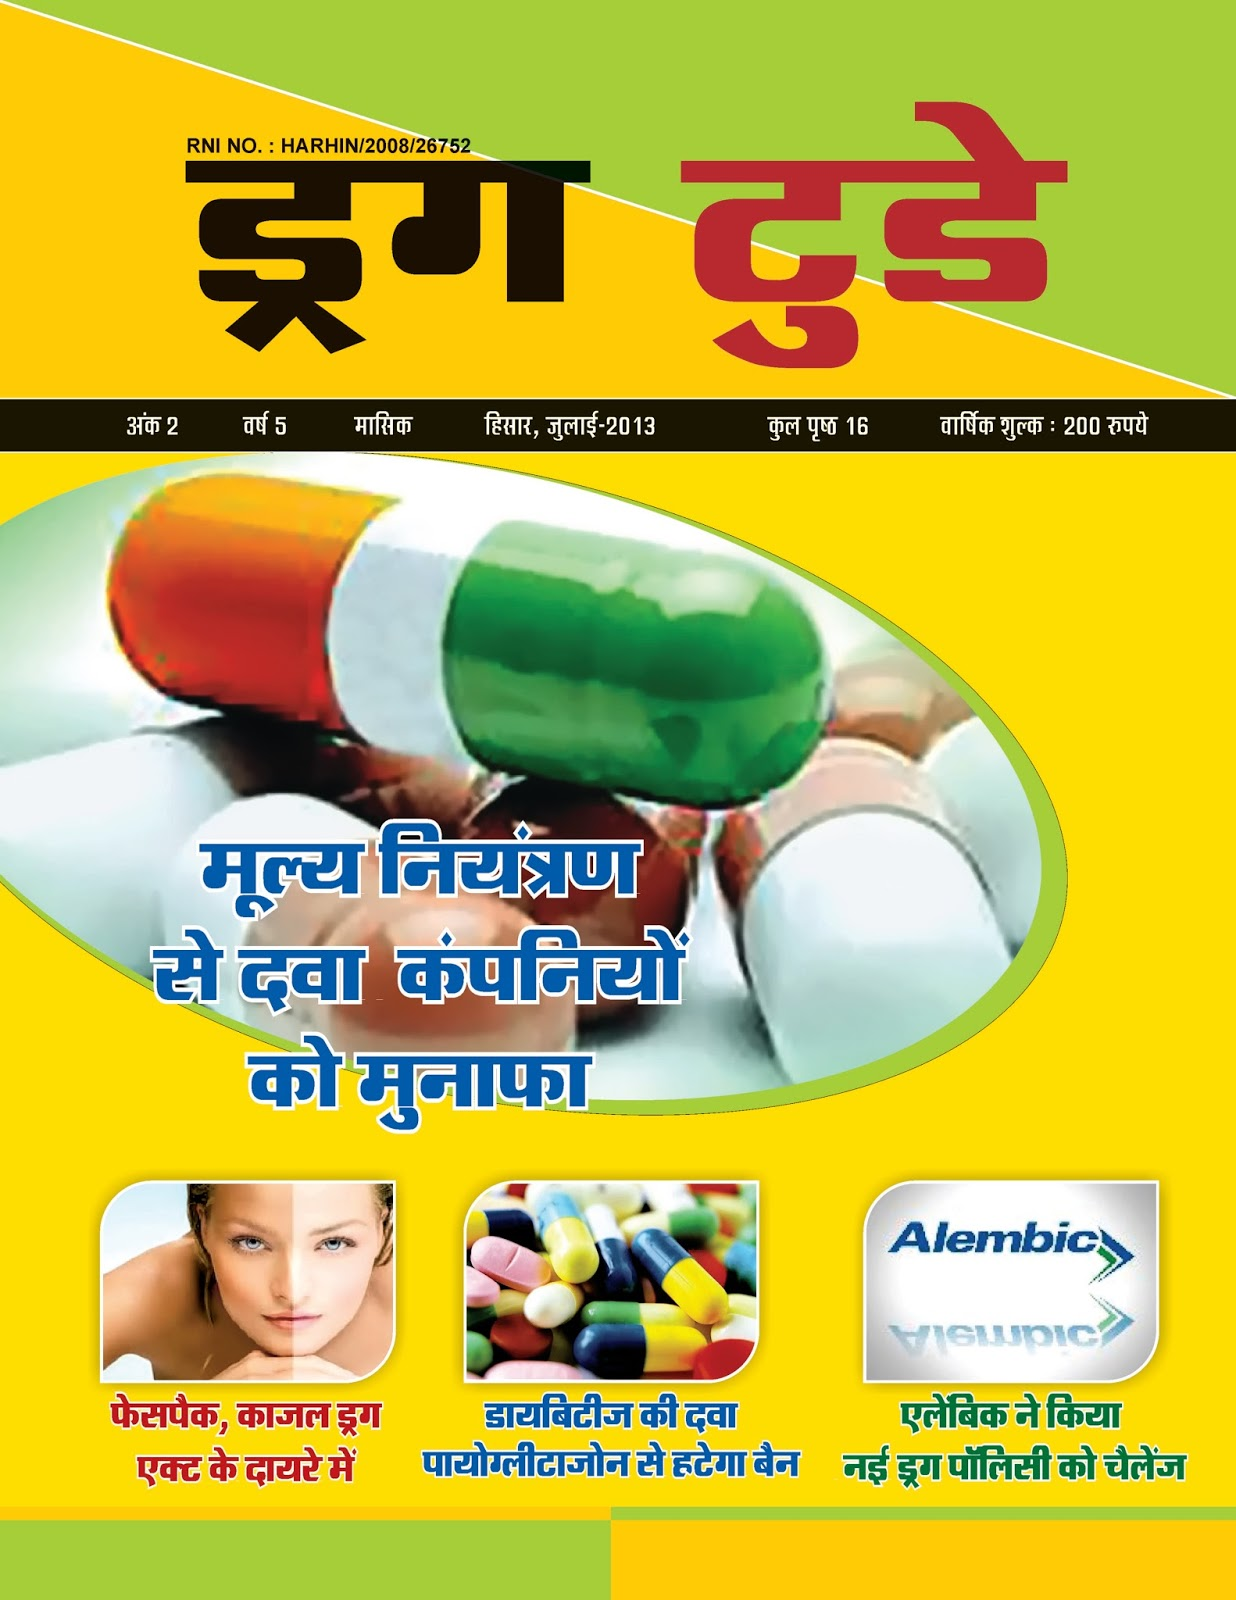 Best Viagra Medicine In India